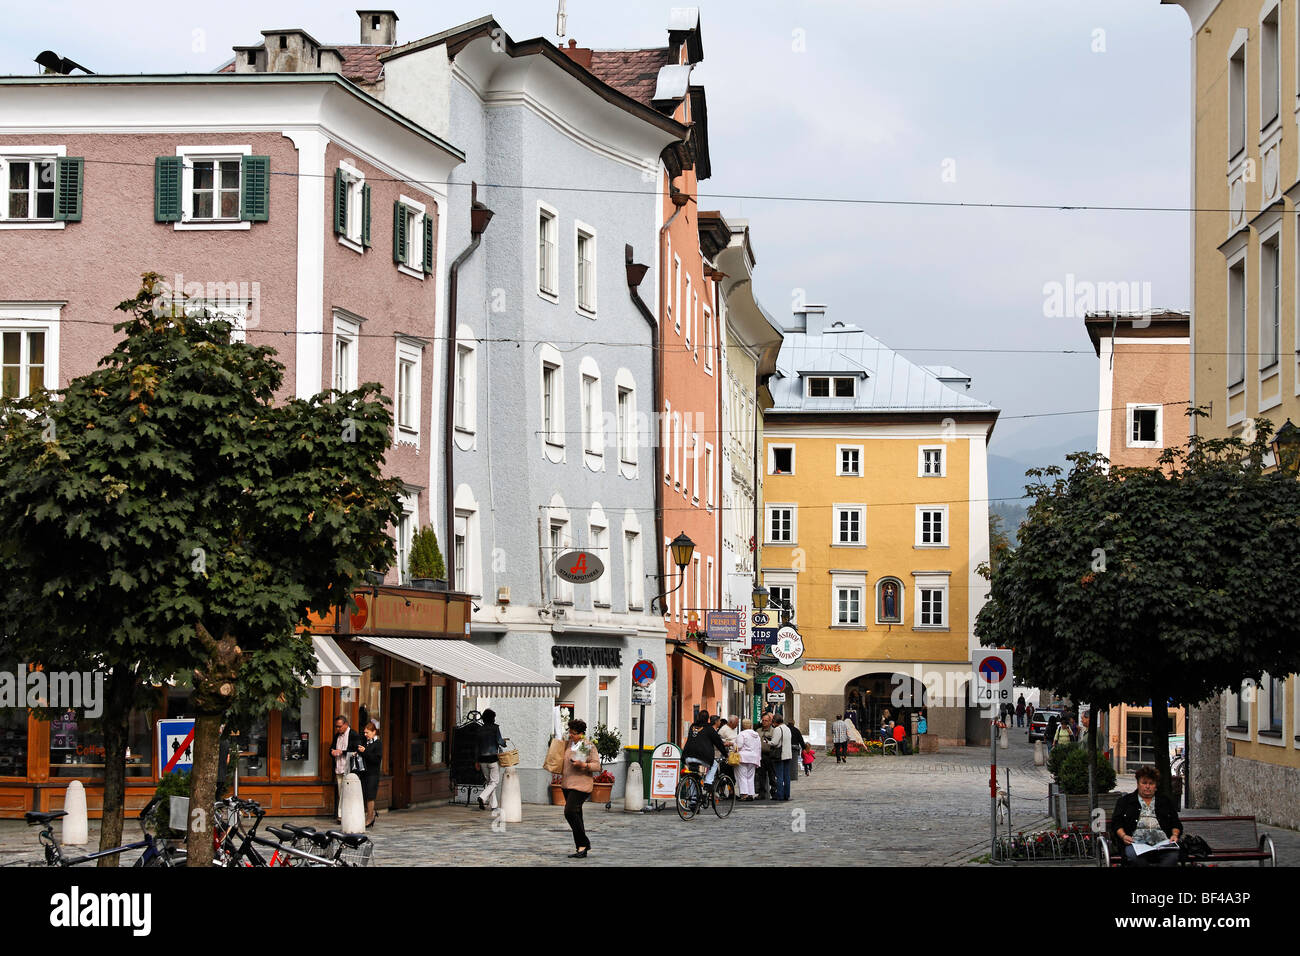 historische alte stadt hallein salzburger land region salzburg sterreich europa stockfoto. Black Bedroom Furniture Sets. Home Design Ideas